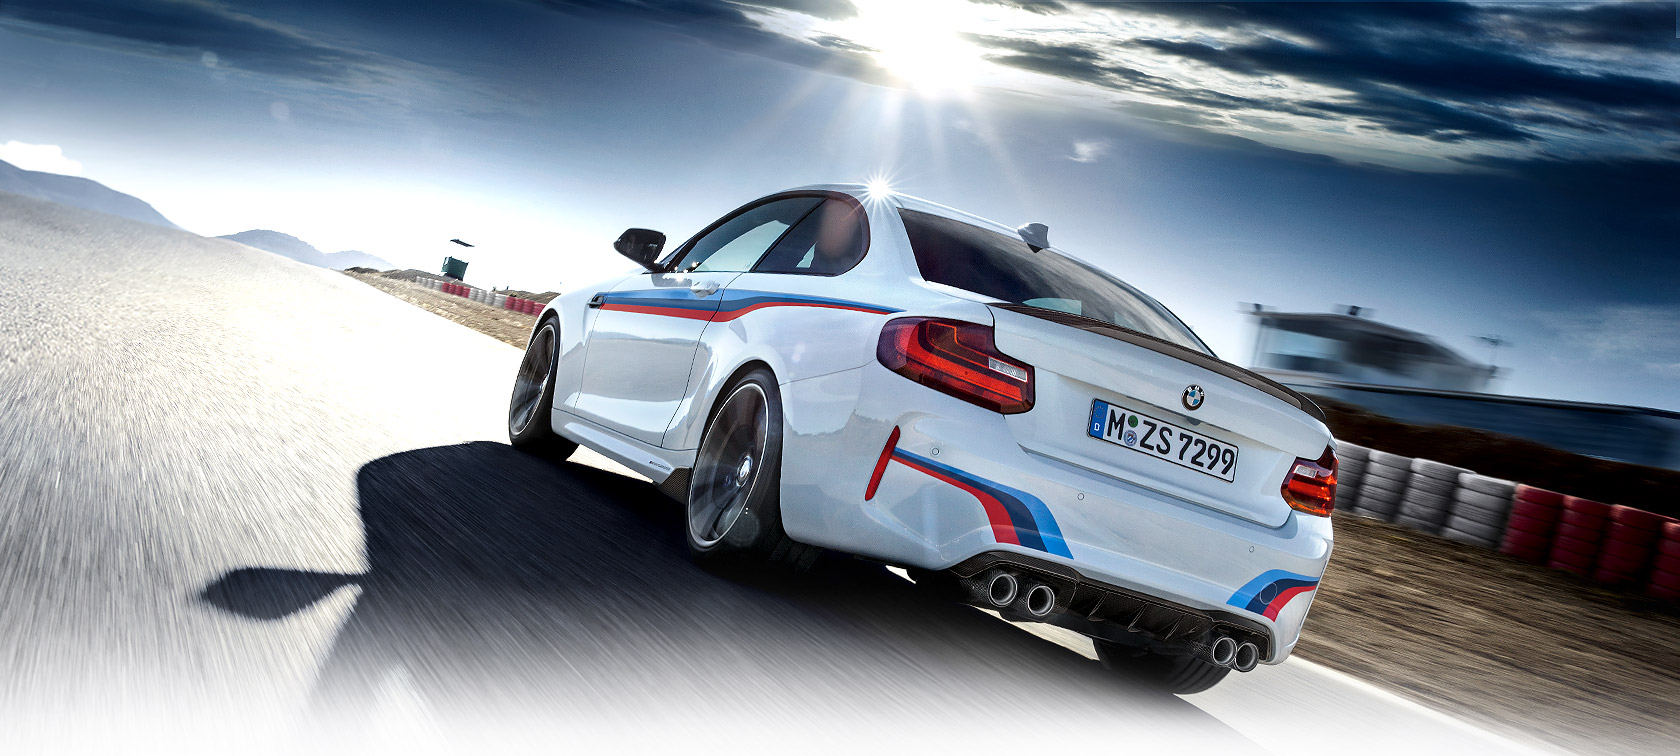 BMW exclusive exterior design and high-performance.